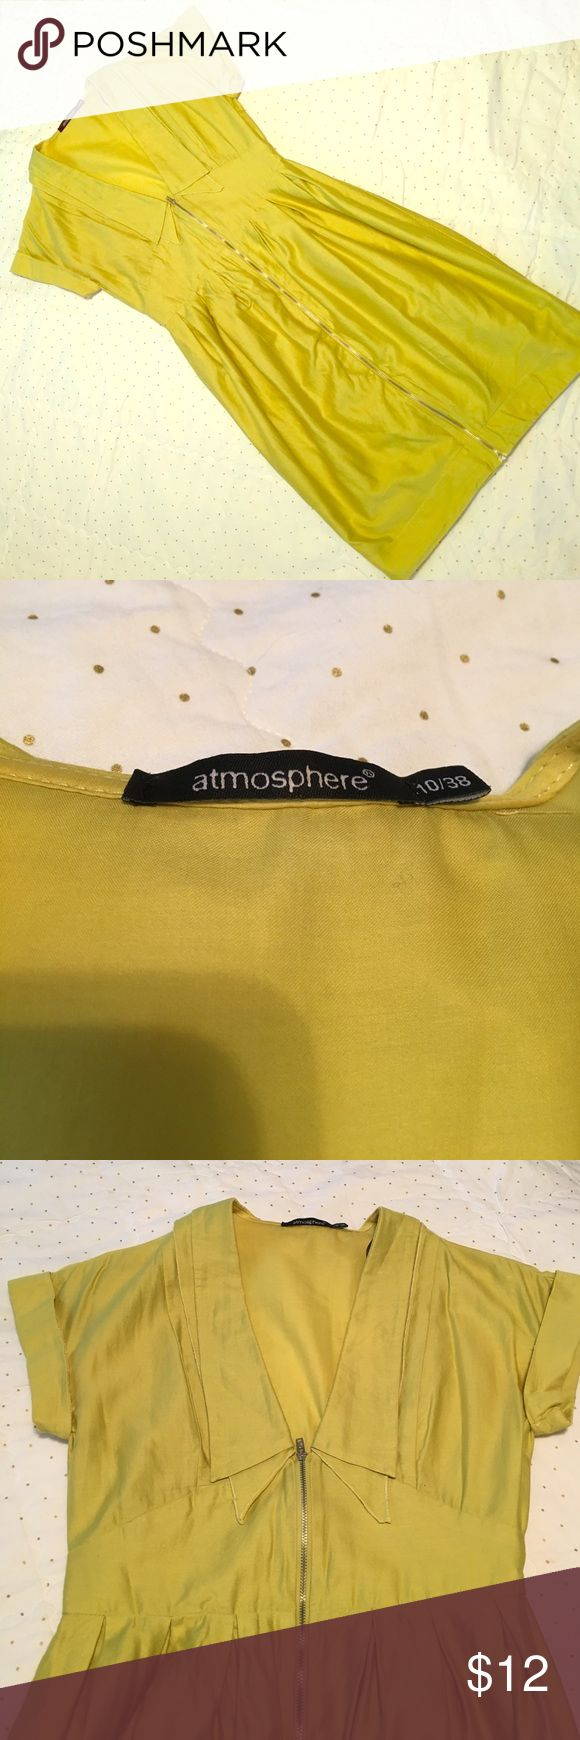 """Atmosphere Primark Dress Purchased in London! 🇬🇧 Beautiful chartreuse citron yellow/green Zip up dress. Size is U.K. 10 which is 8 US. 100% Cotton. Gently worn. Hard for me to part with! 🇬🇧🇬🇧🇬🇧🇬🇧 Length is 36 1/2"""". Waist is 14"""". Atmosphere by Primark Dresses Midi"""